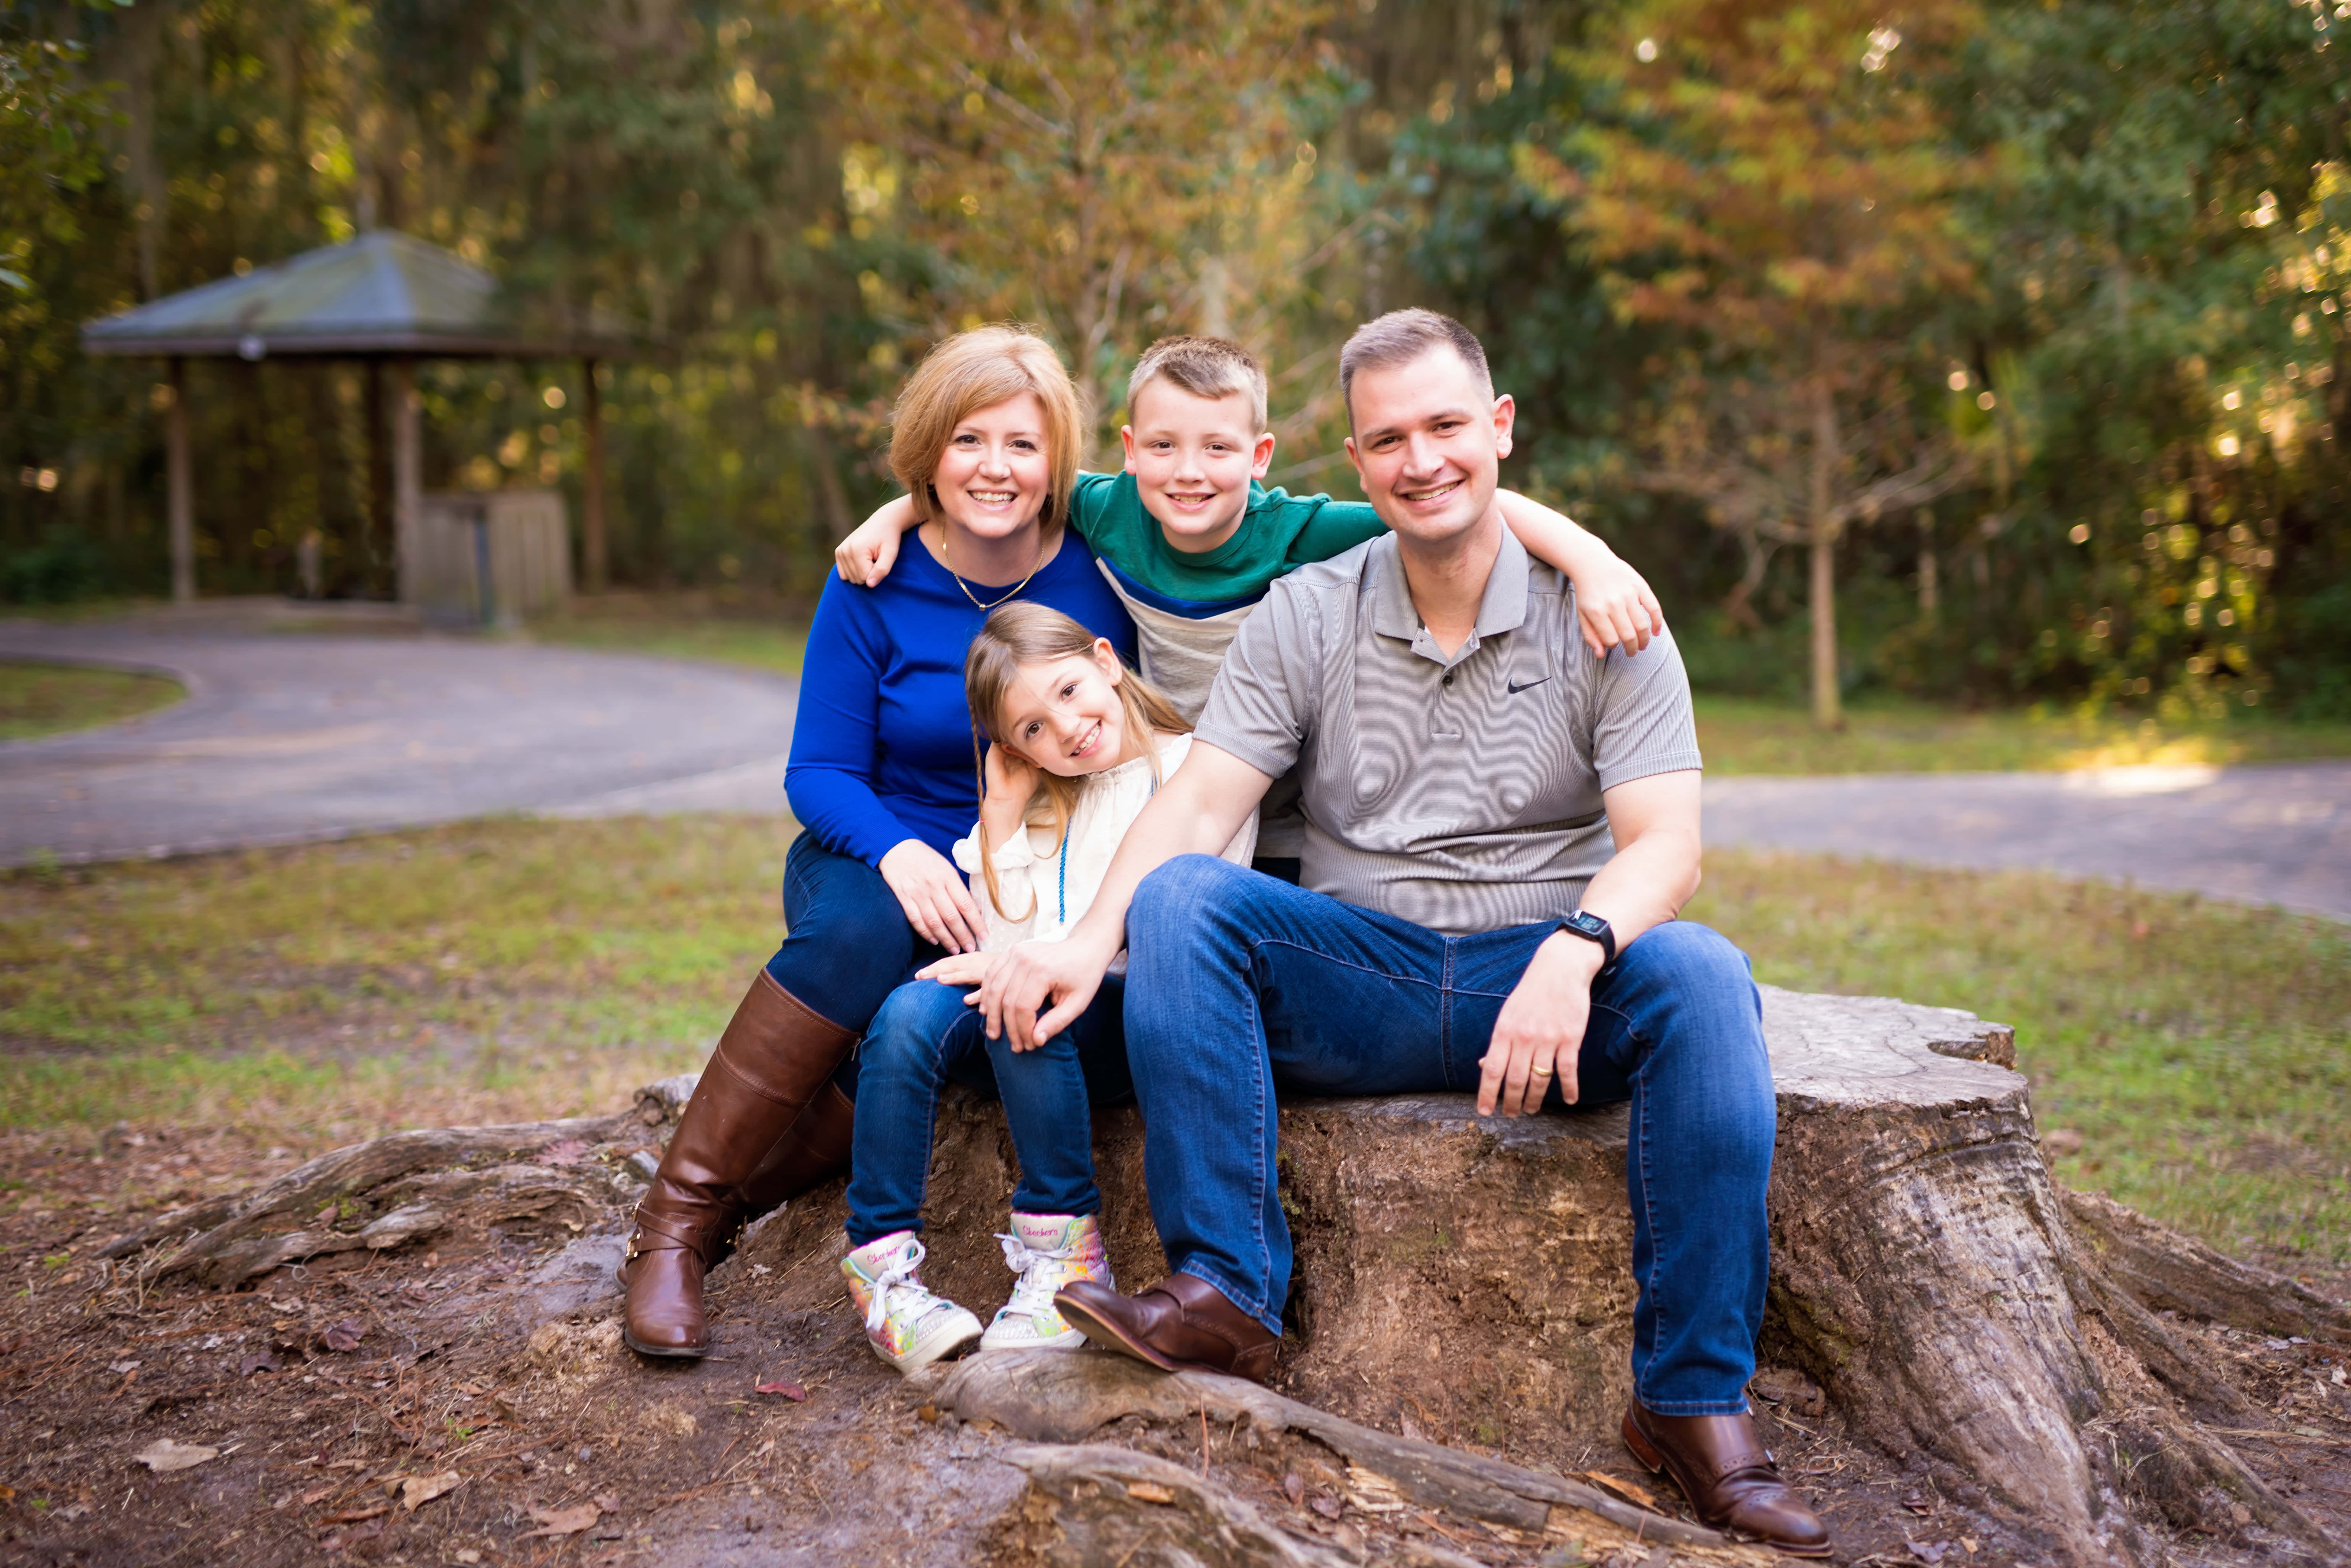 Adam Brandon with his wife, Kristi, and their children, John and Katherine.